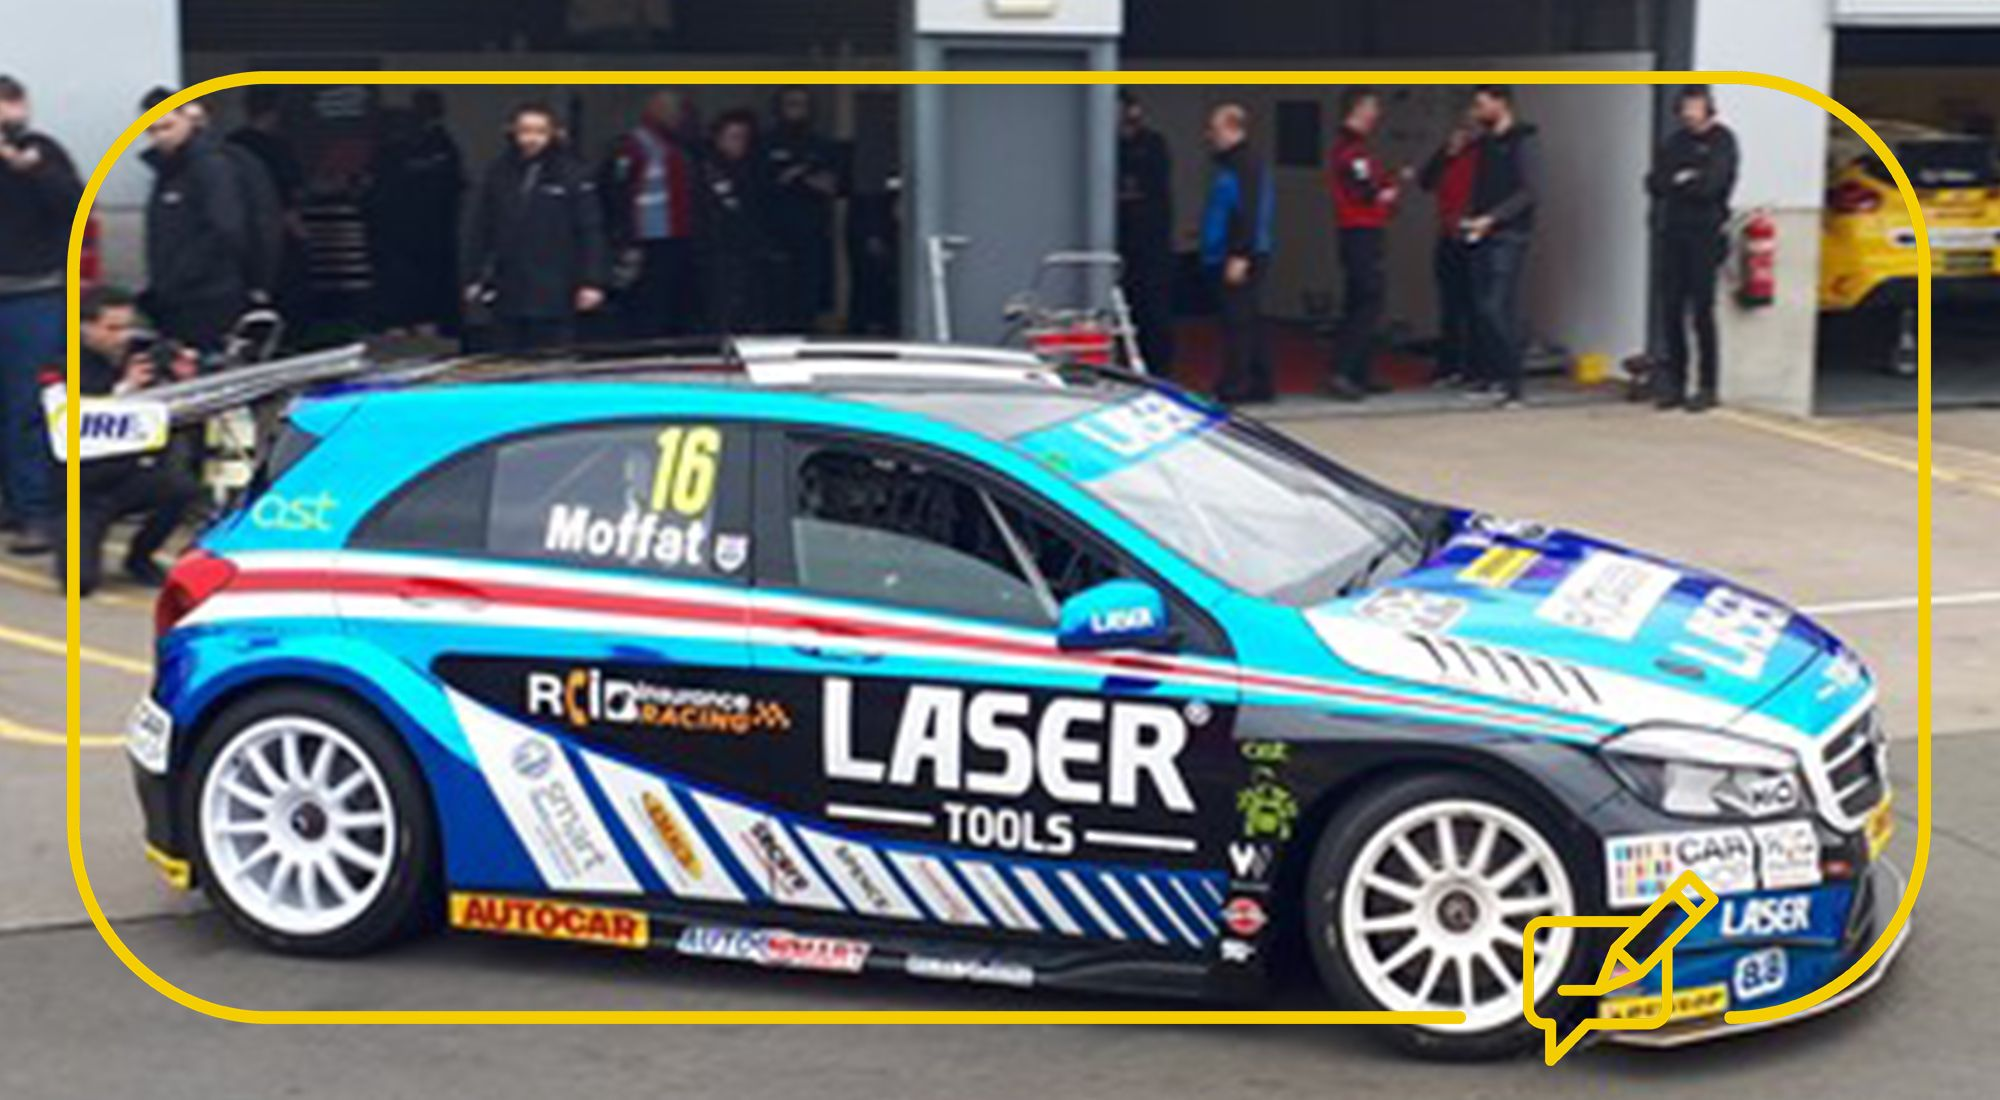 The Car Shop >> Carshop Gets A Sneak Peek At The Btcc Media Day With Aiden Moffat